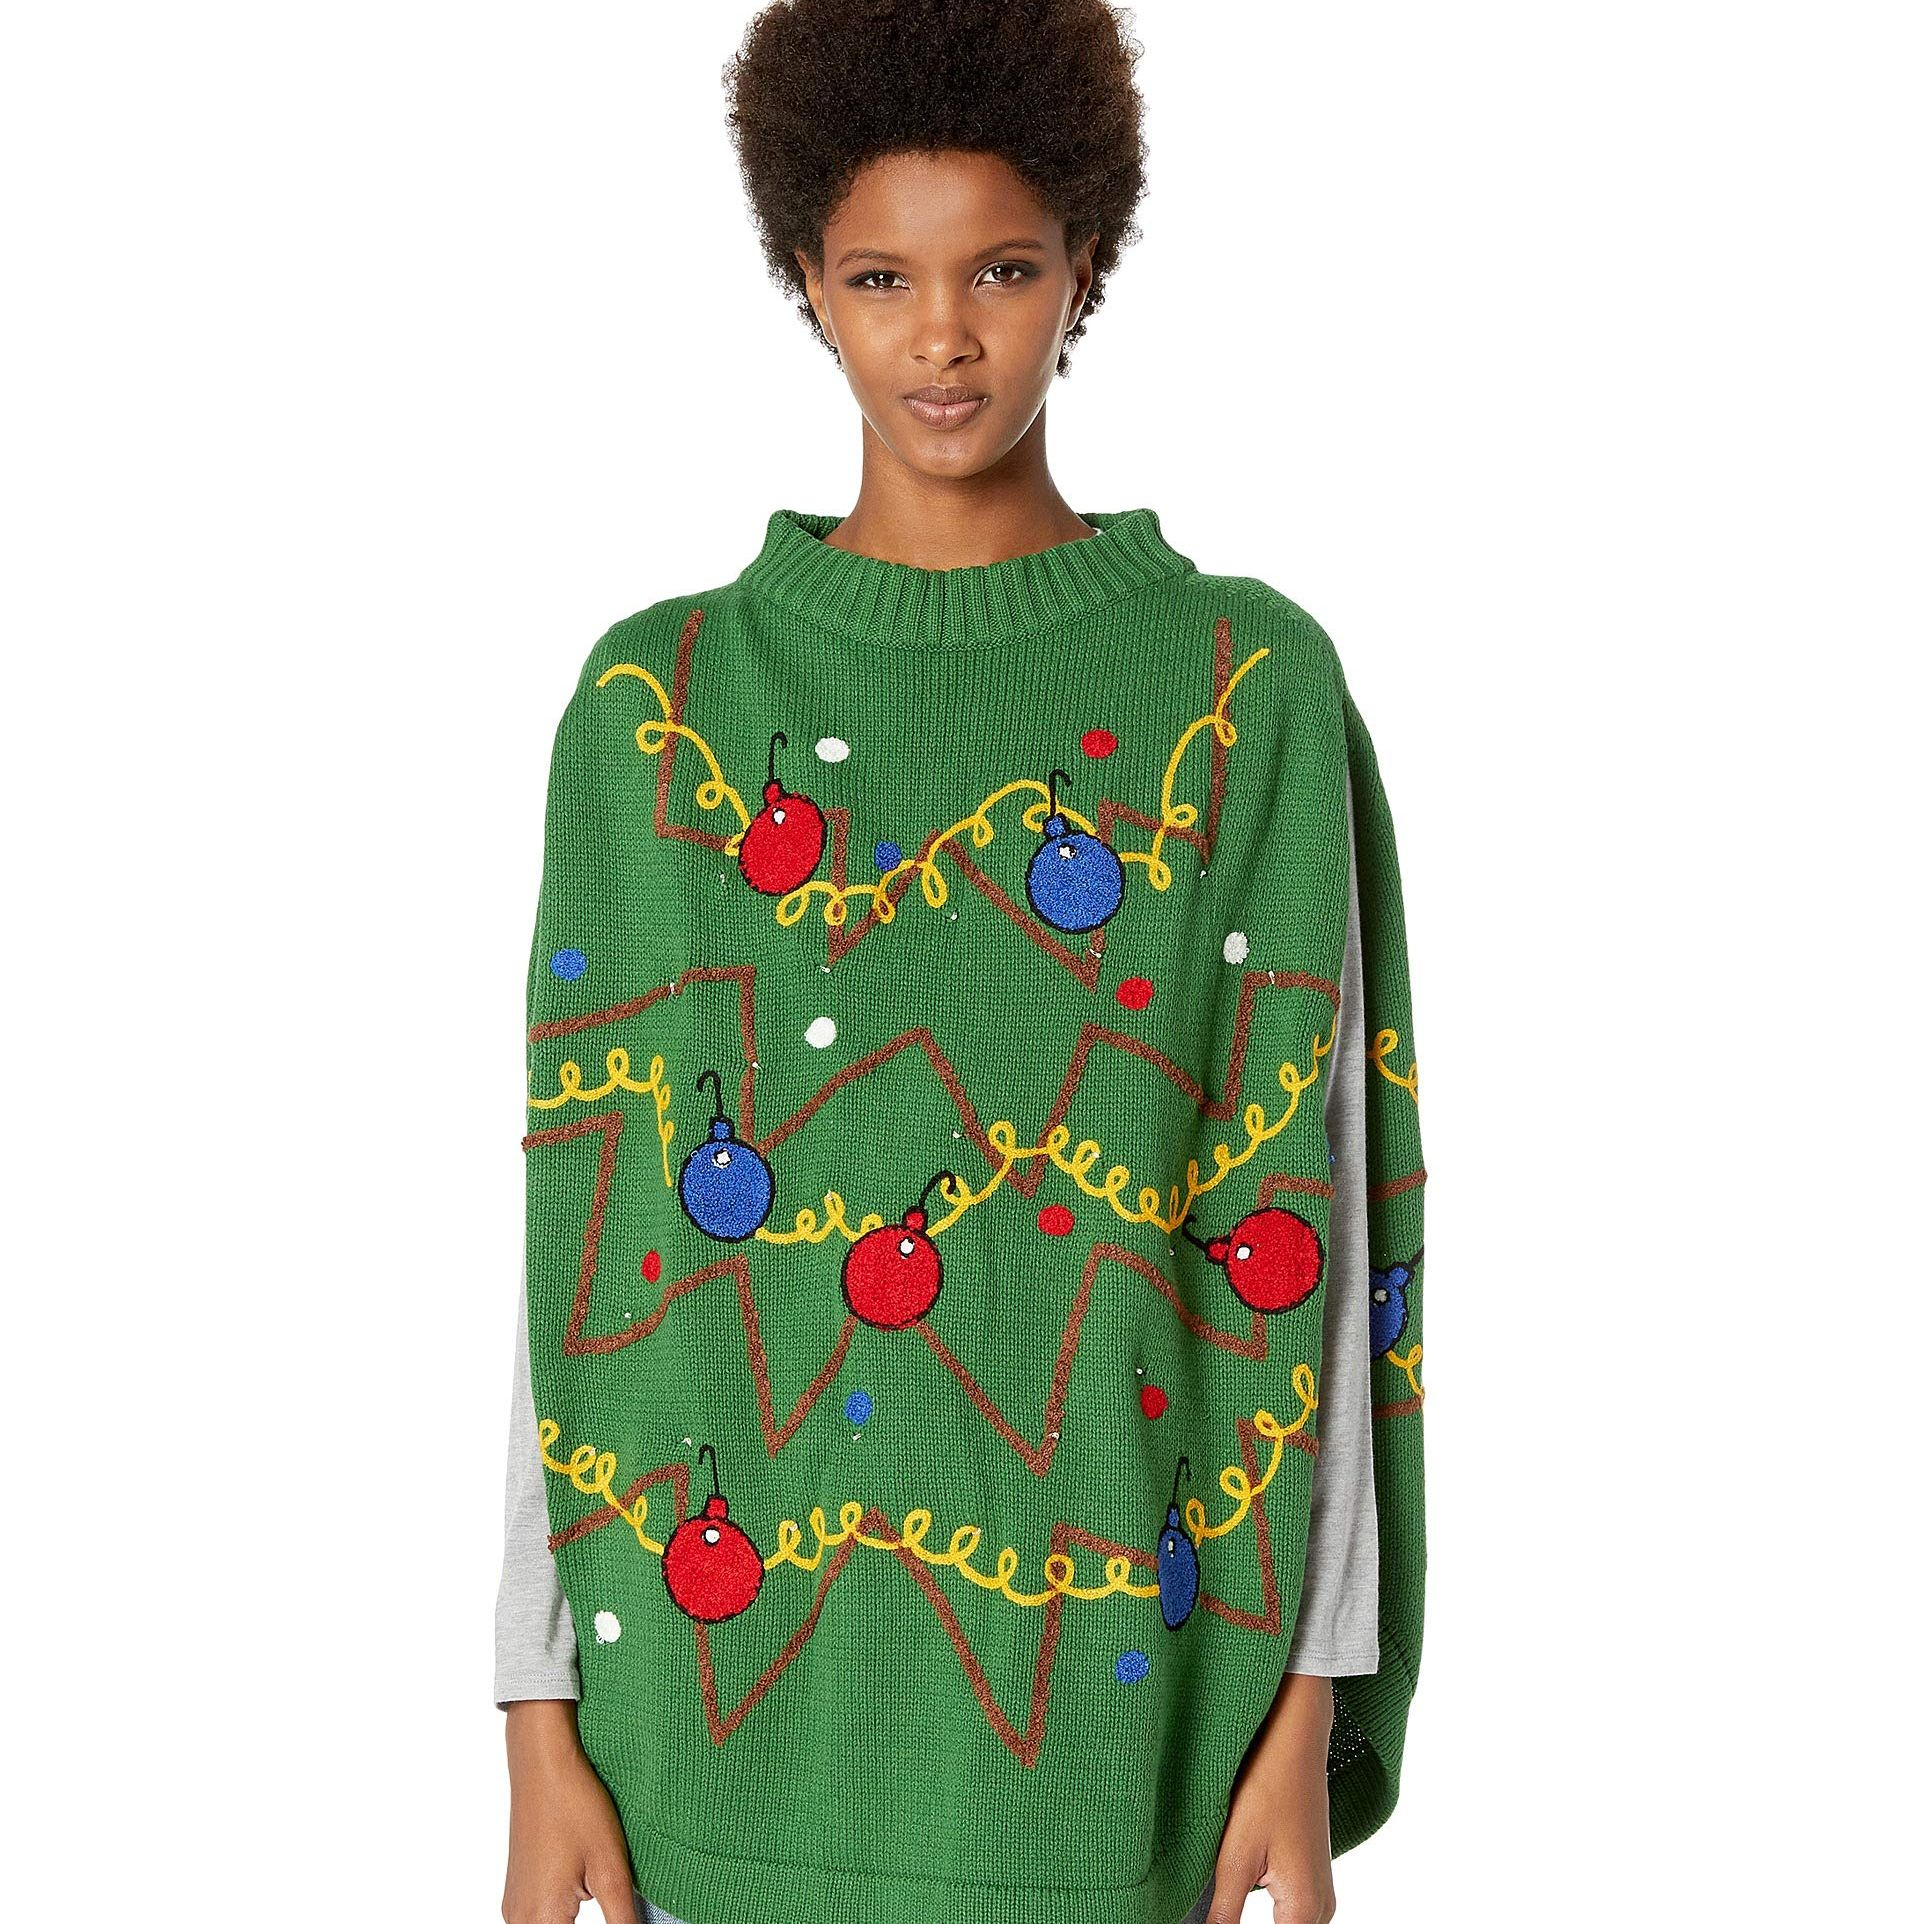 Whoopi Goldberg Christmas Sweaters.Whoopi Goldberg Ugly Christmas Sweater Line At Zappos 2018